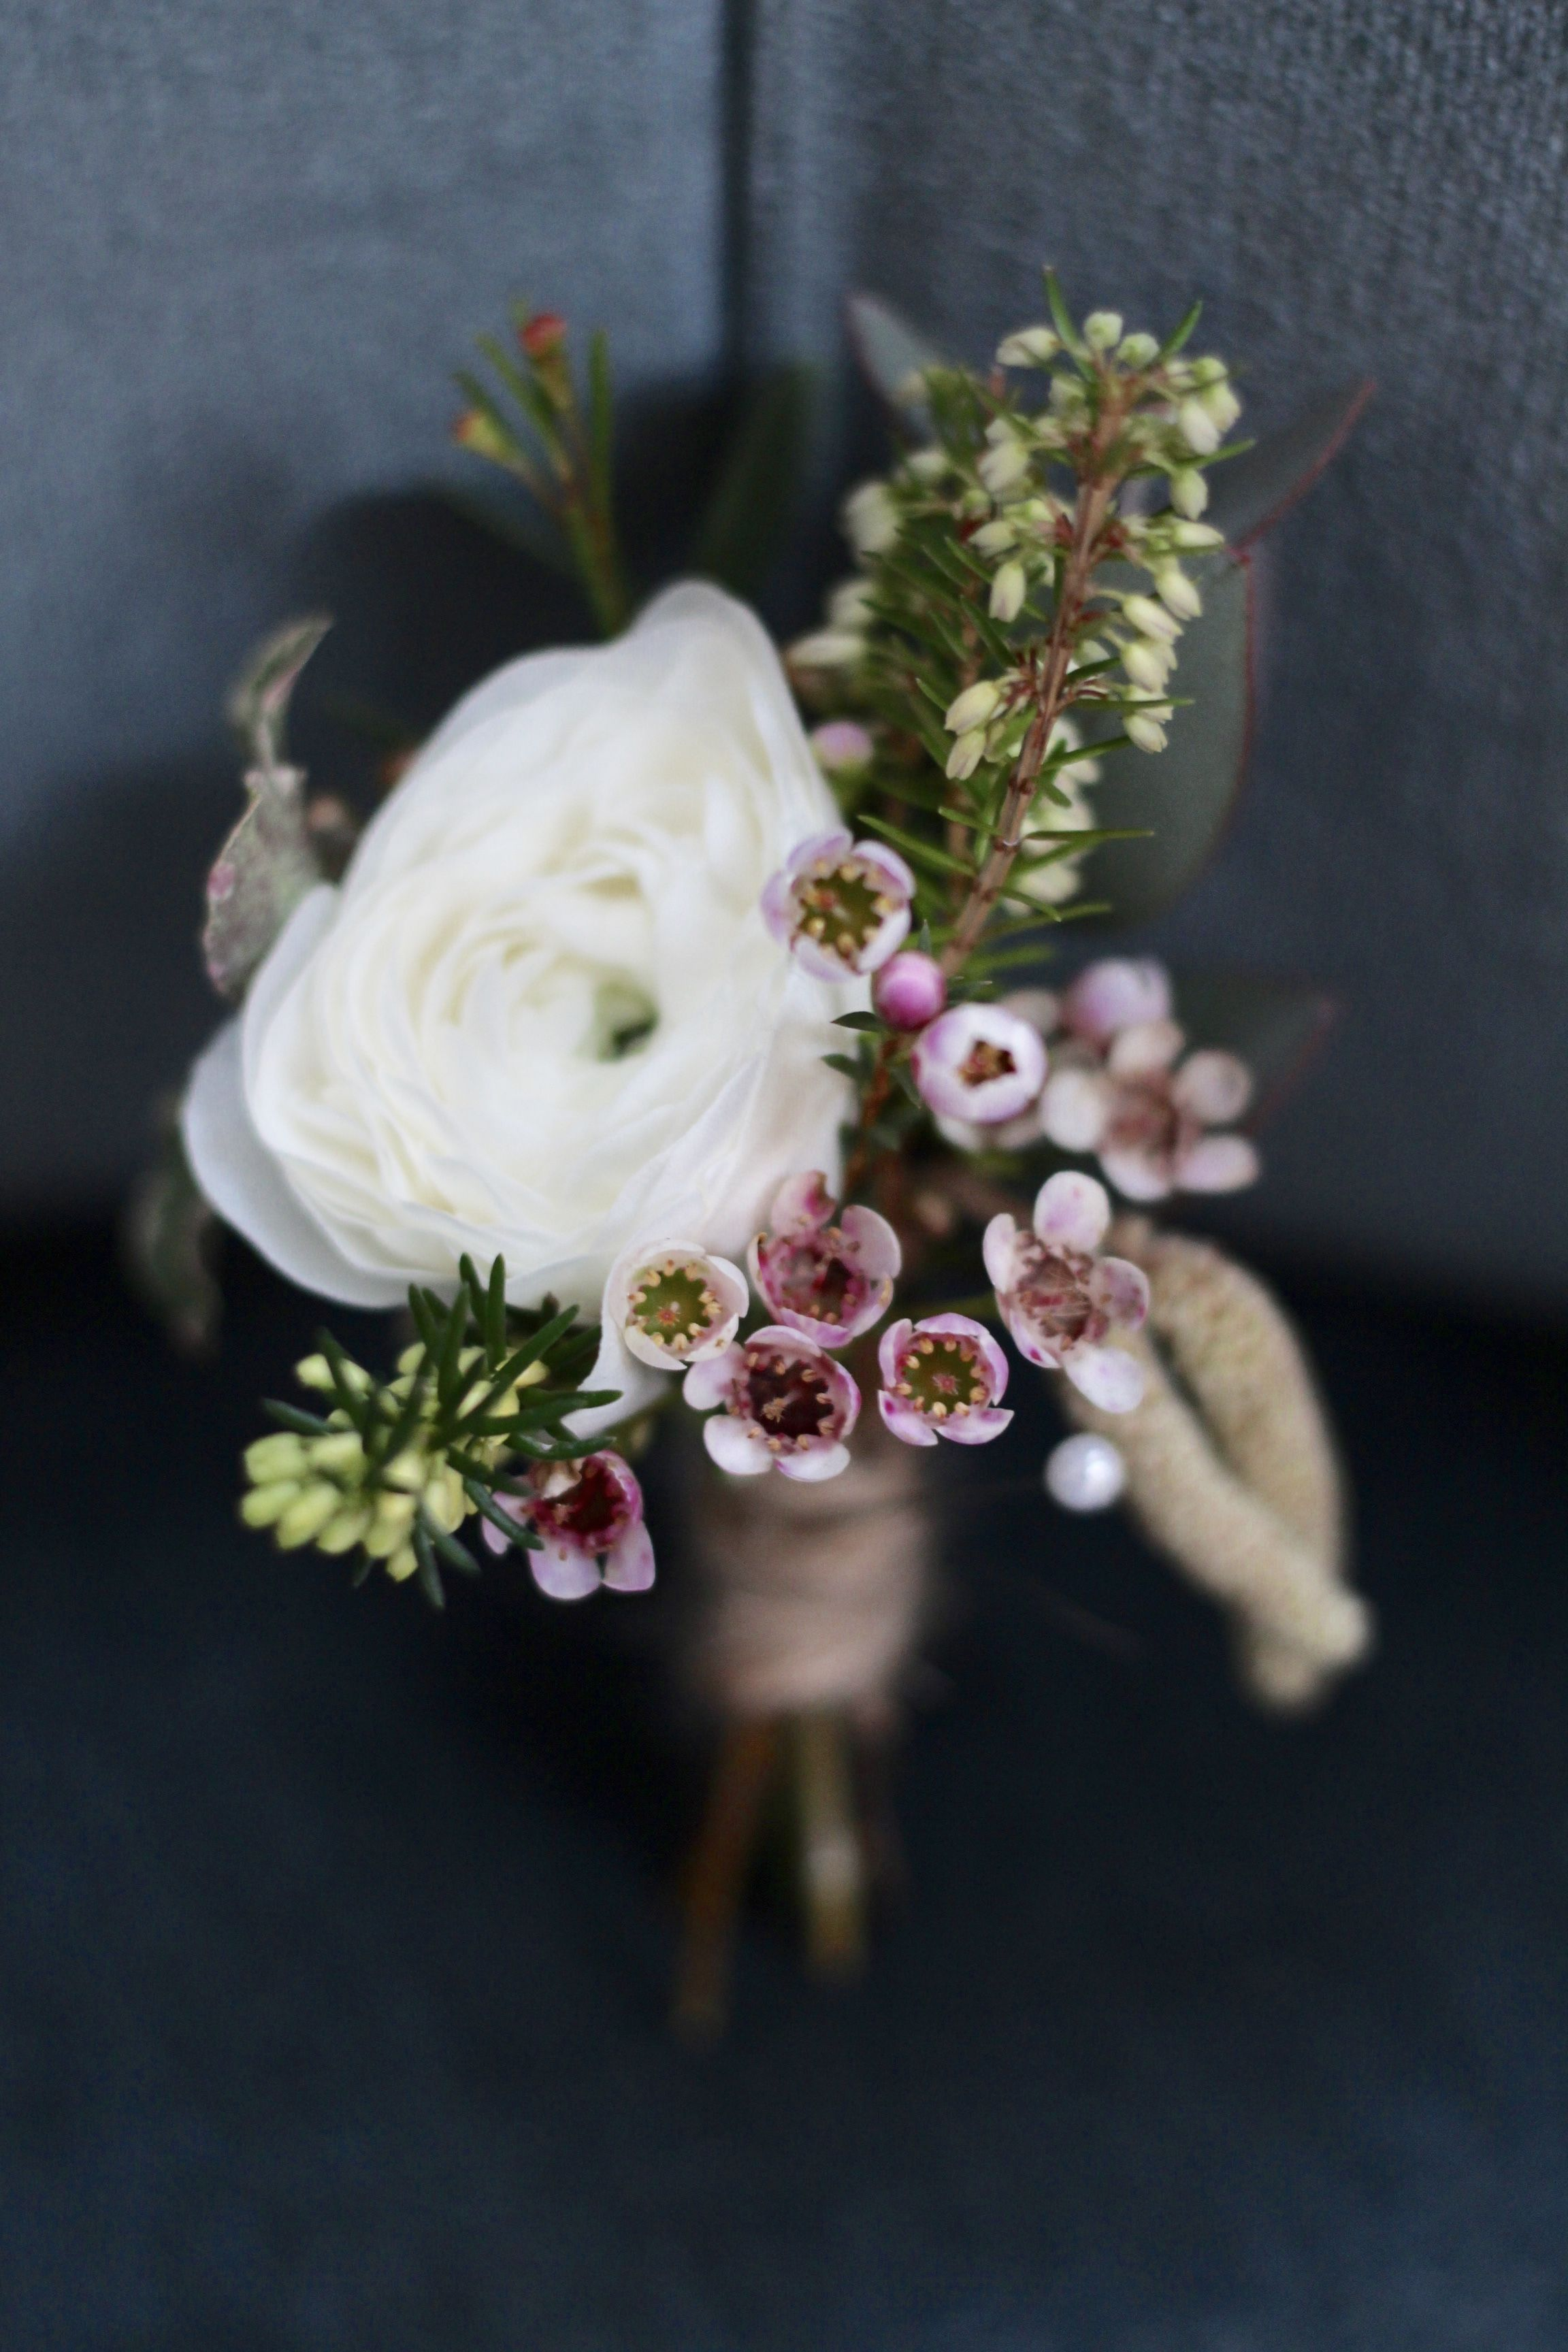 White Ranunculus With Heather And Wax Flowers For A Wedding Buttonhole White Wax Flower Button Holes Wedding Beautiful Wedding Flowers